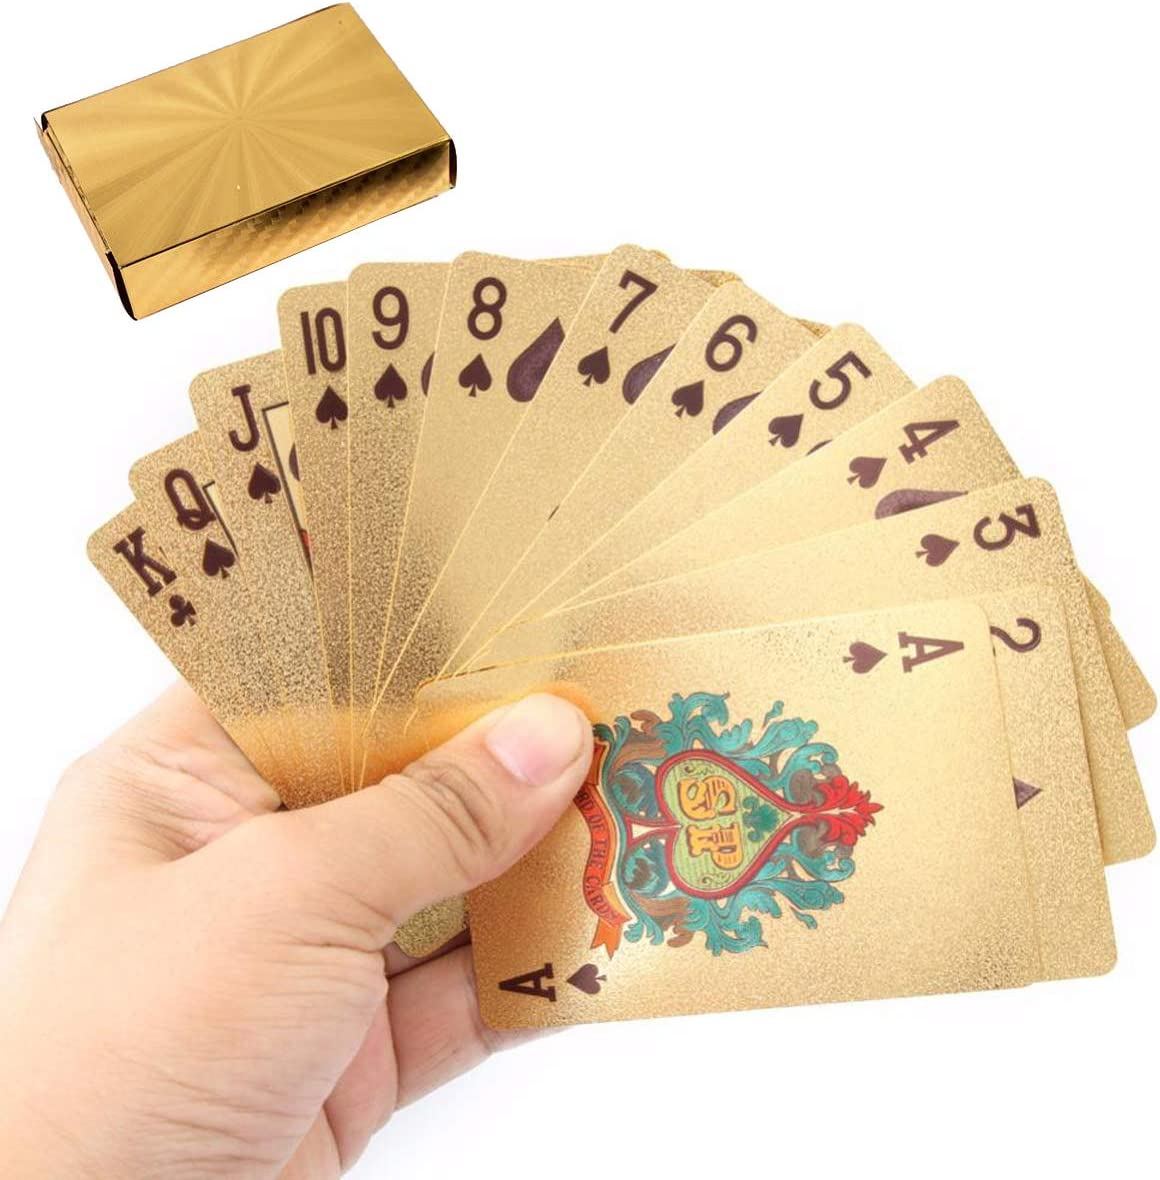 Techson Poker for Playing Texas Holdem Blackjack Game, PVC Plastic Cards with Waterproof, Made for Magic Tricks Deck Family Party Game